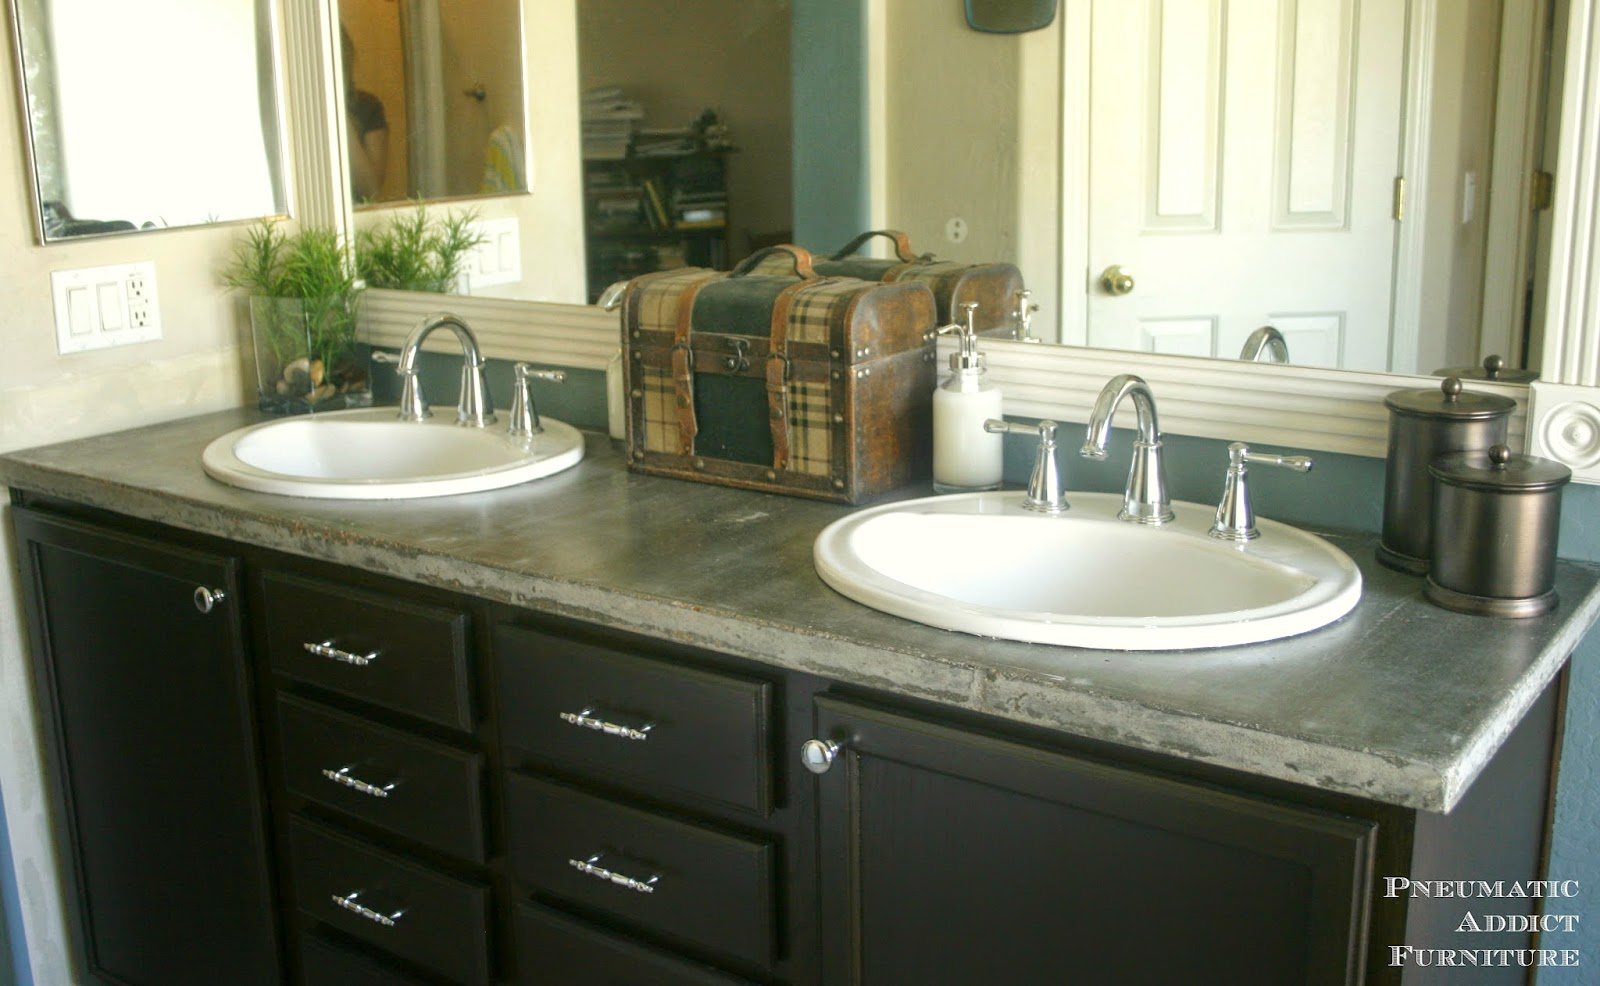 Beautiful Pneumatic Addict Diy Concrete Countertop With Sink Openings